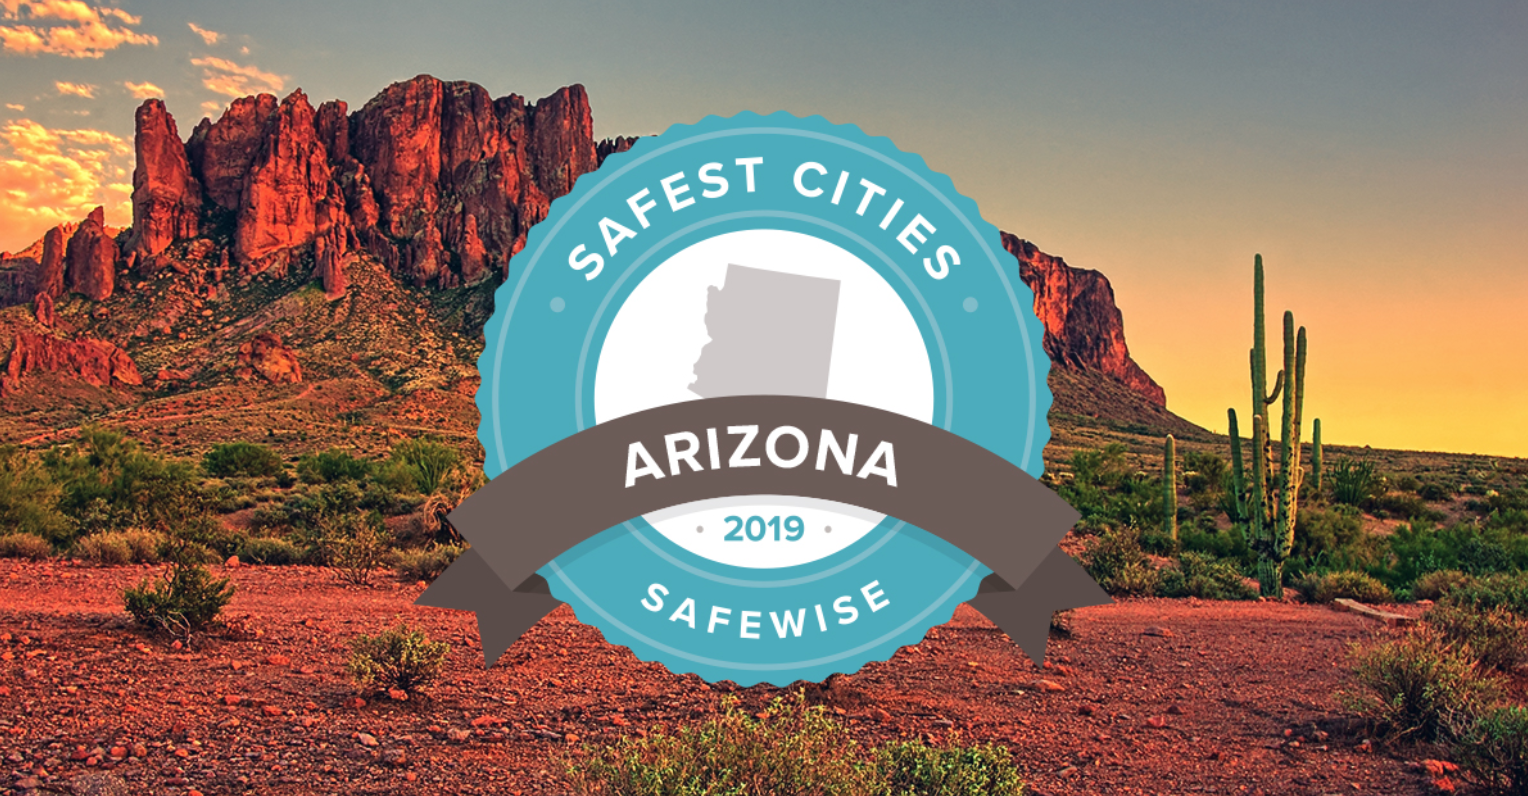 Marana made the list of safest cities in Arizona by Safewise